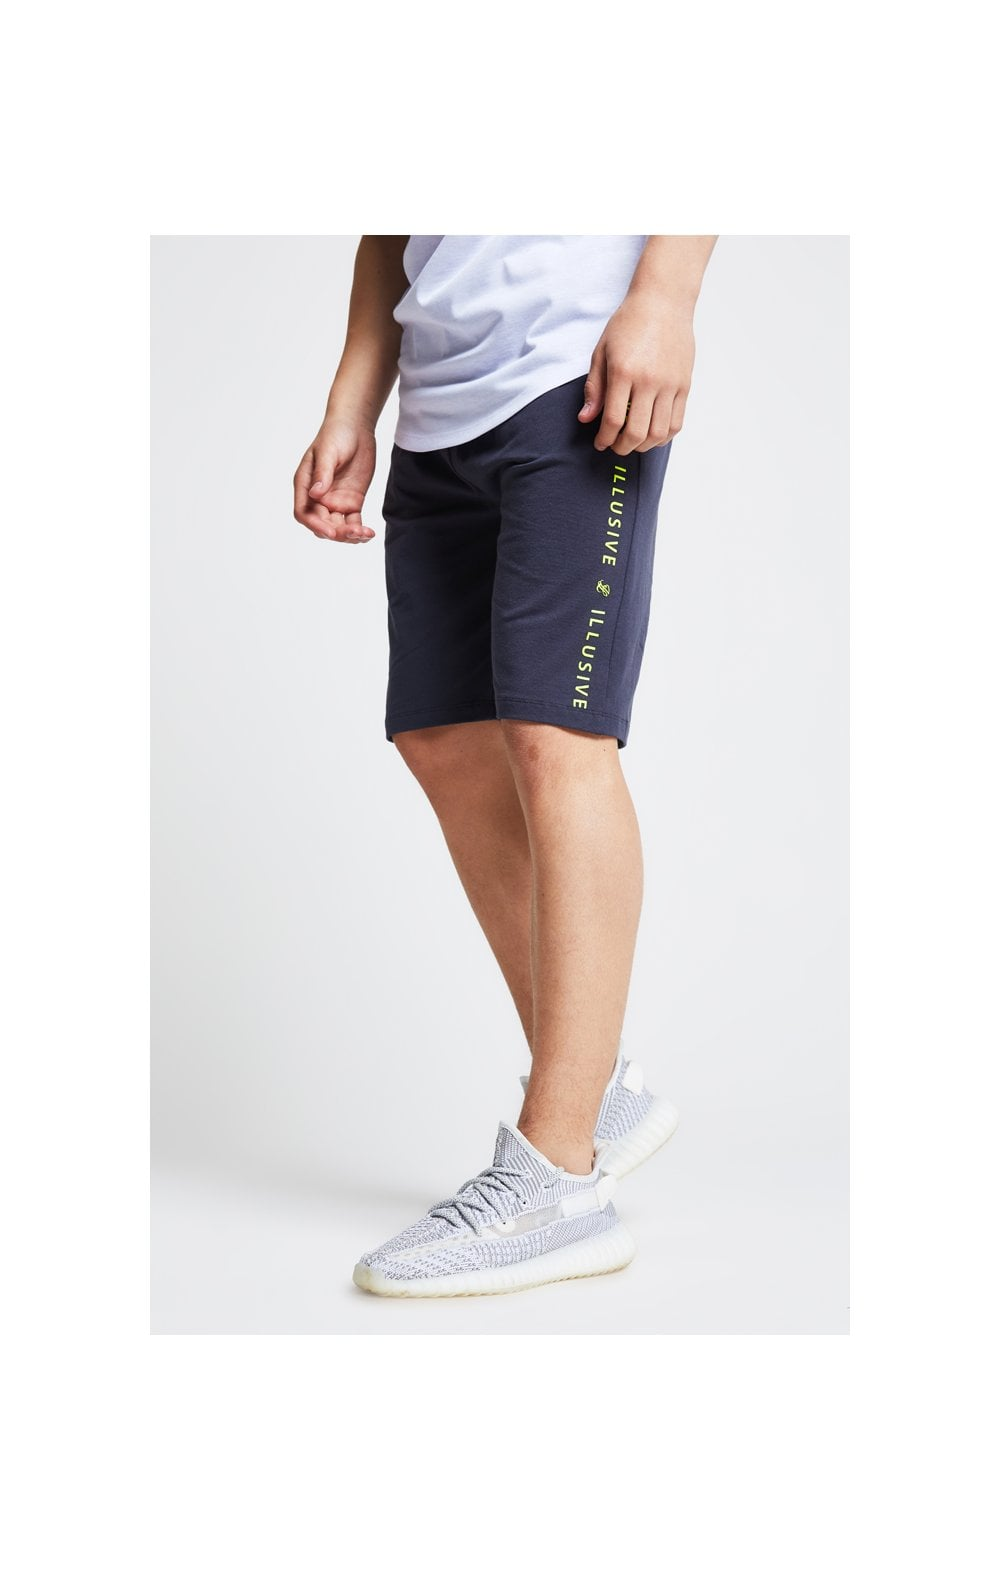 Illusive London Jersey Shorts - Grey Neon Yellow